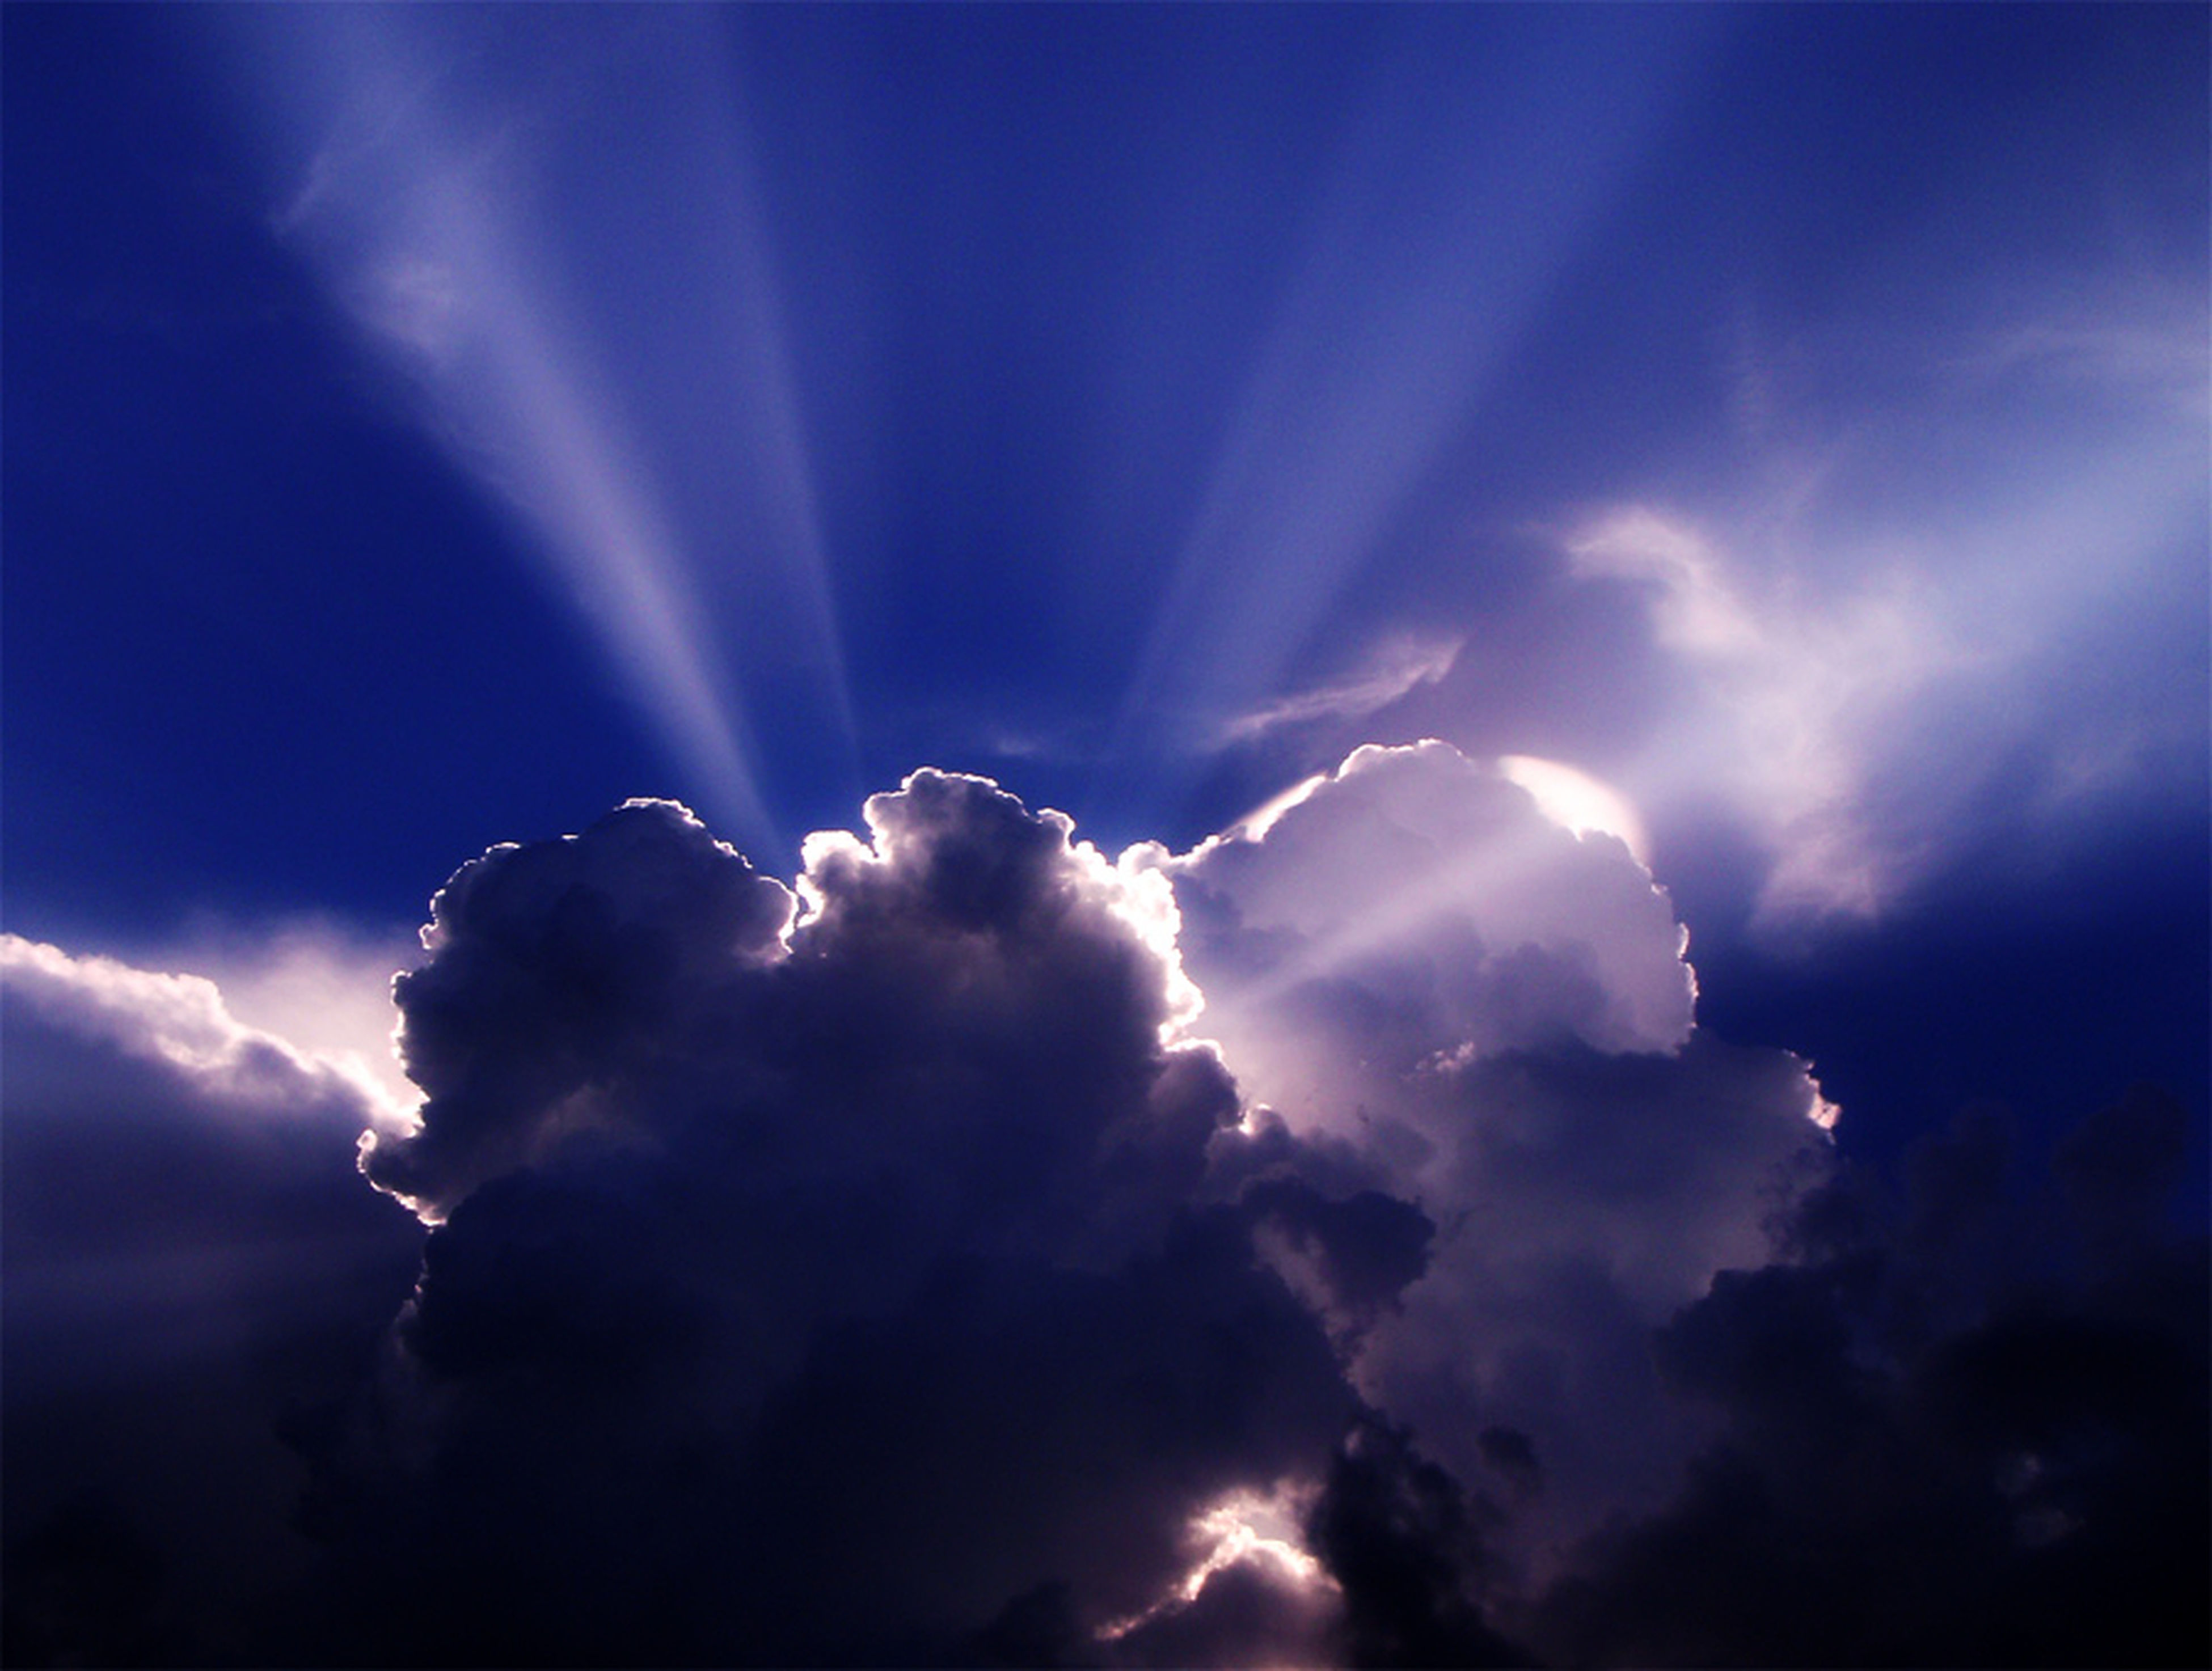 sky, cloud - sky, low angle view, beauty in nature, scenics, sky only, nature, tranquility, cloudscape, tranquil scene, cloudy, blue, sunbeam, idyllic, majestic, cloud, dramatic sky, weather, atmospheric mood, outdoors